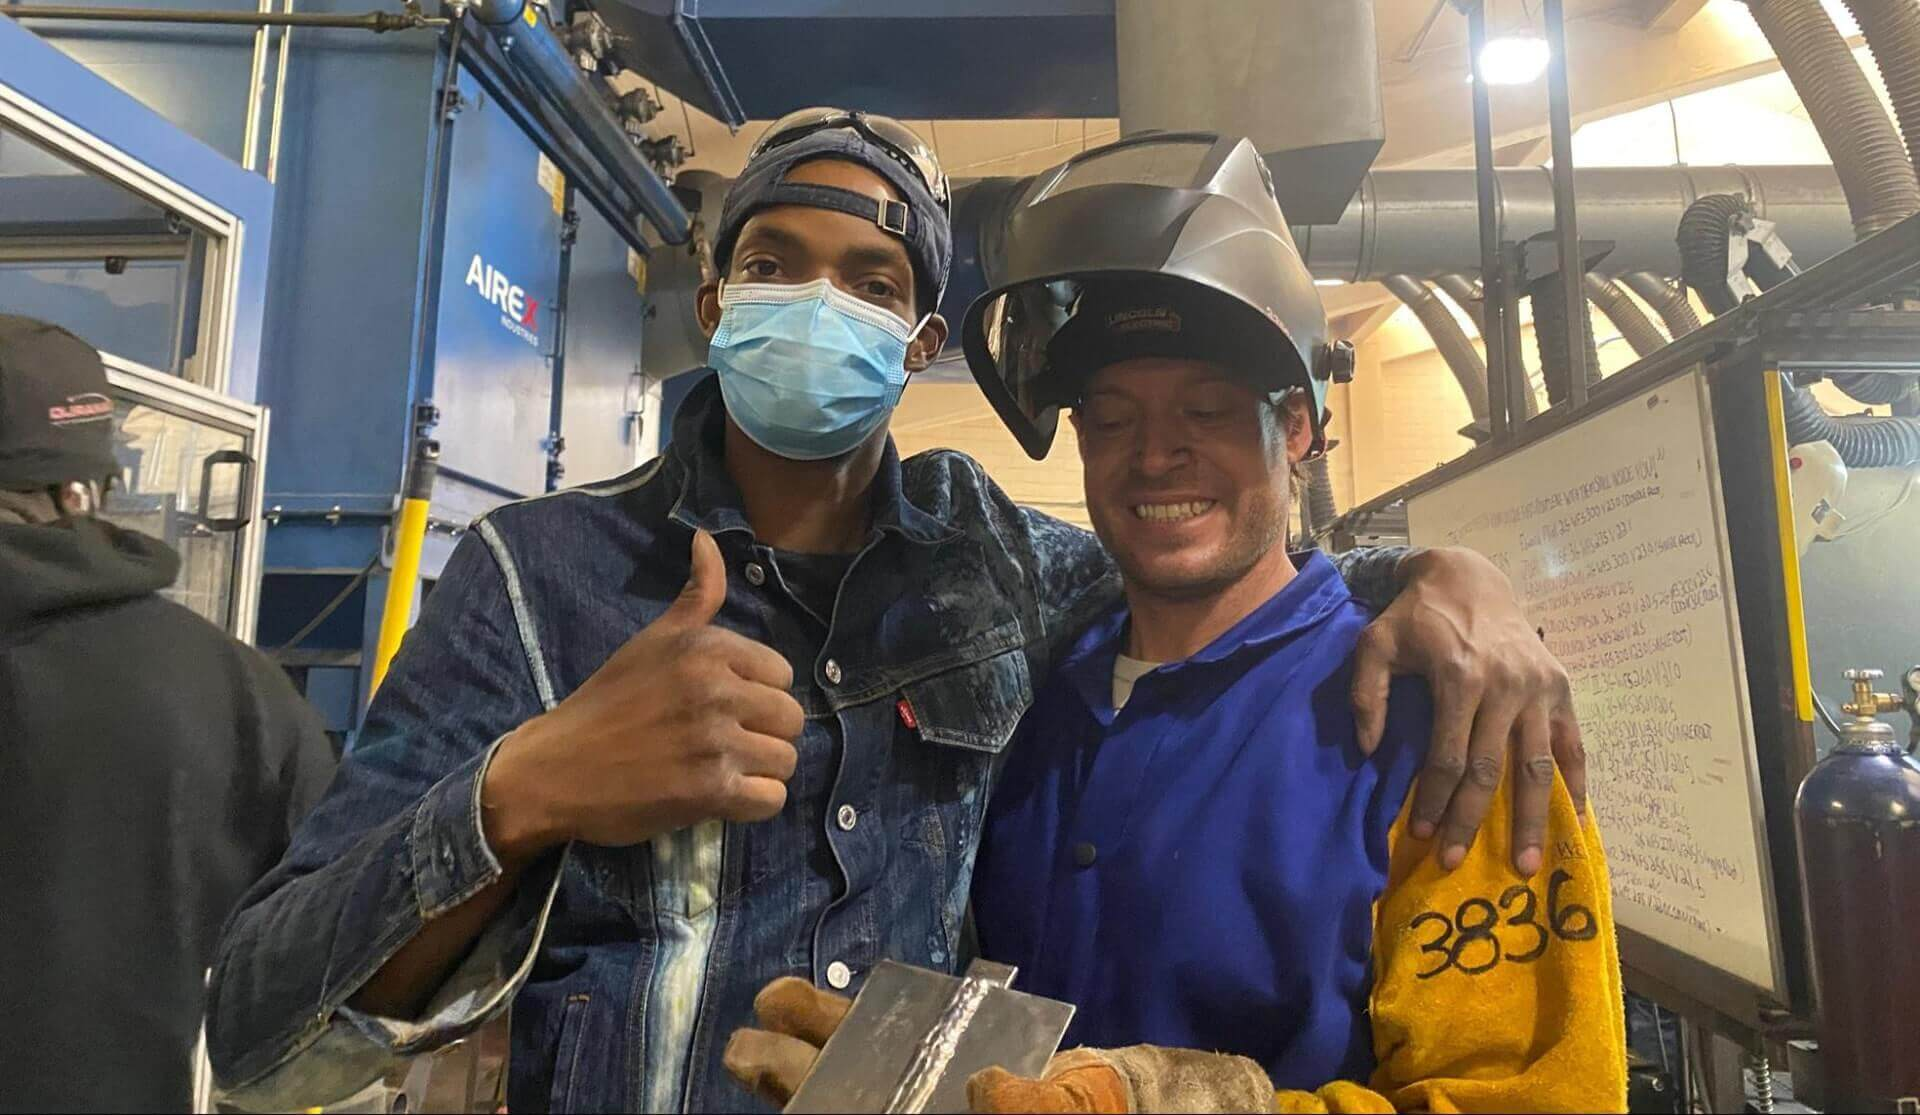 What Skilled Trades Jobs Make The Most Money?